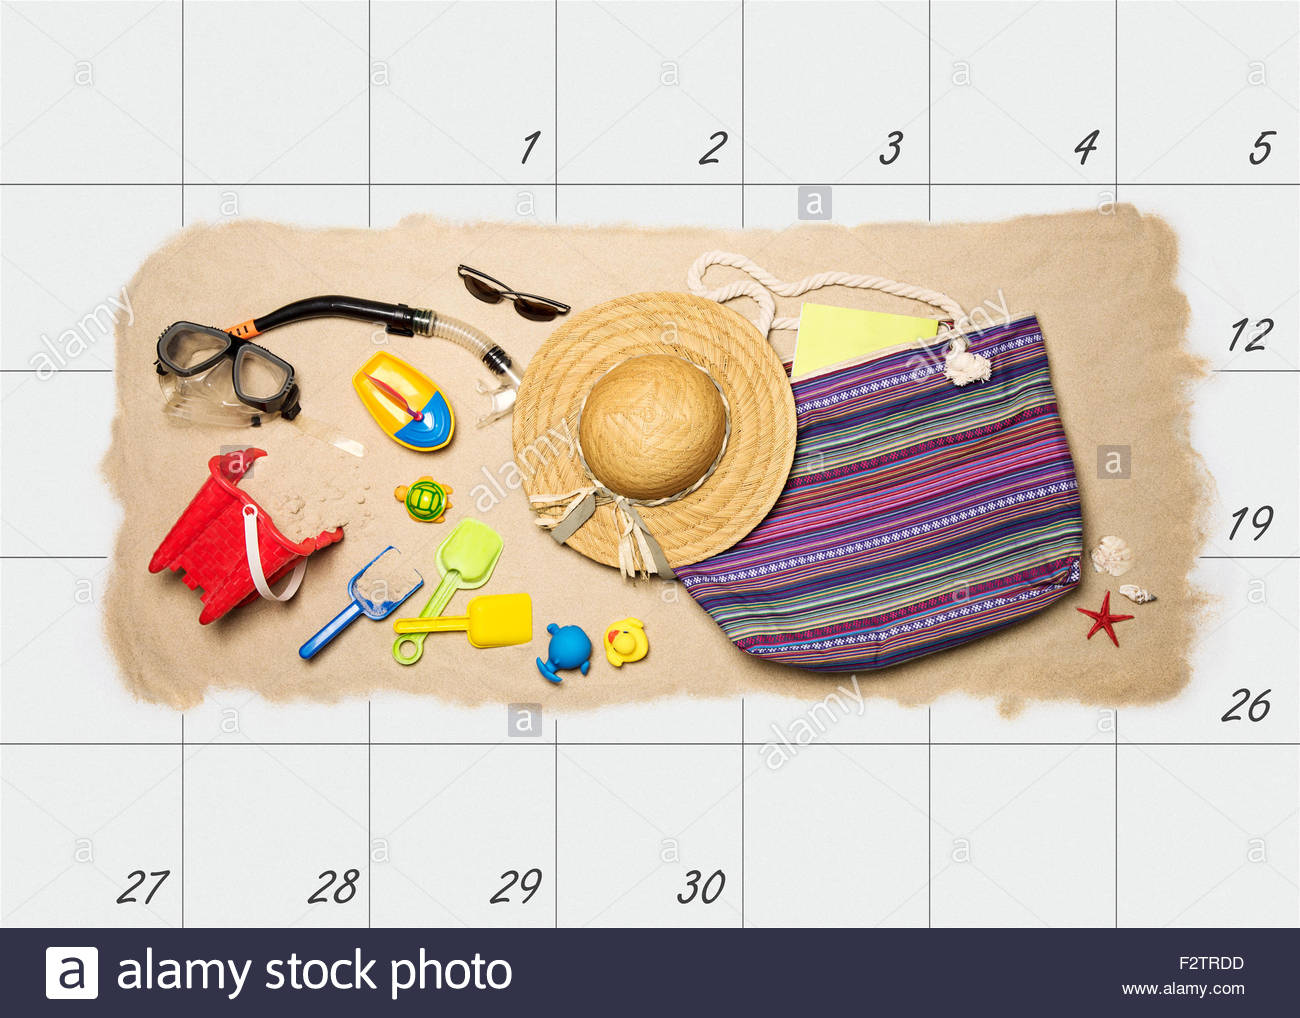 Summer holiday planning. Summer beach accessories on top of monthly calendar - Stock Image